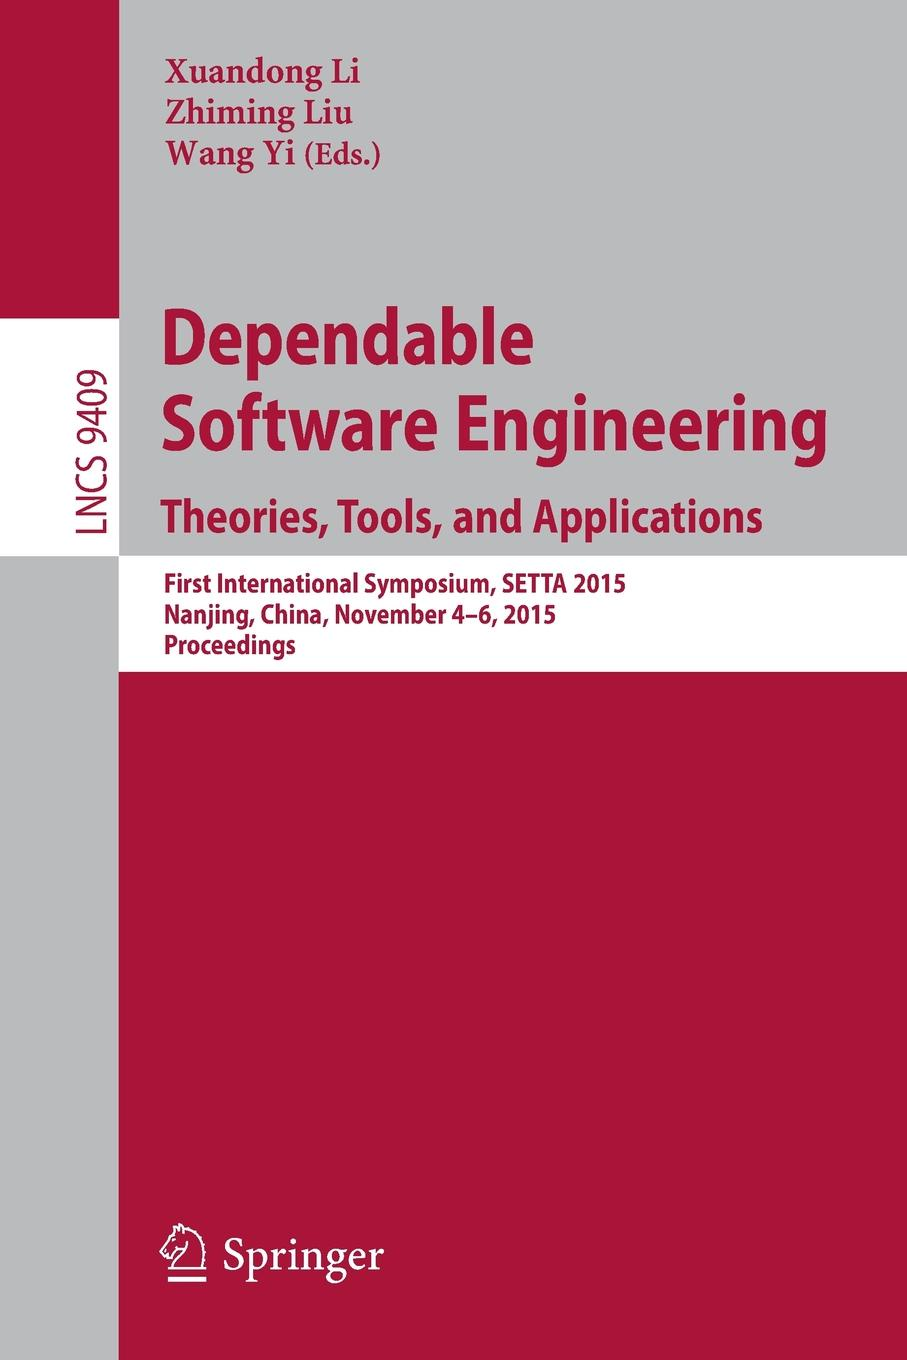 Dependable Software Engineering. Theories, Tools, and Applications : First International Symposium, SETTA 2015, Nanjing, China, November 4-6, 2015, Proceedings angela henderson c family theories foundations and applications